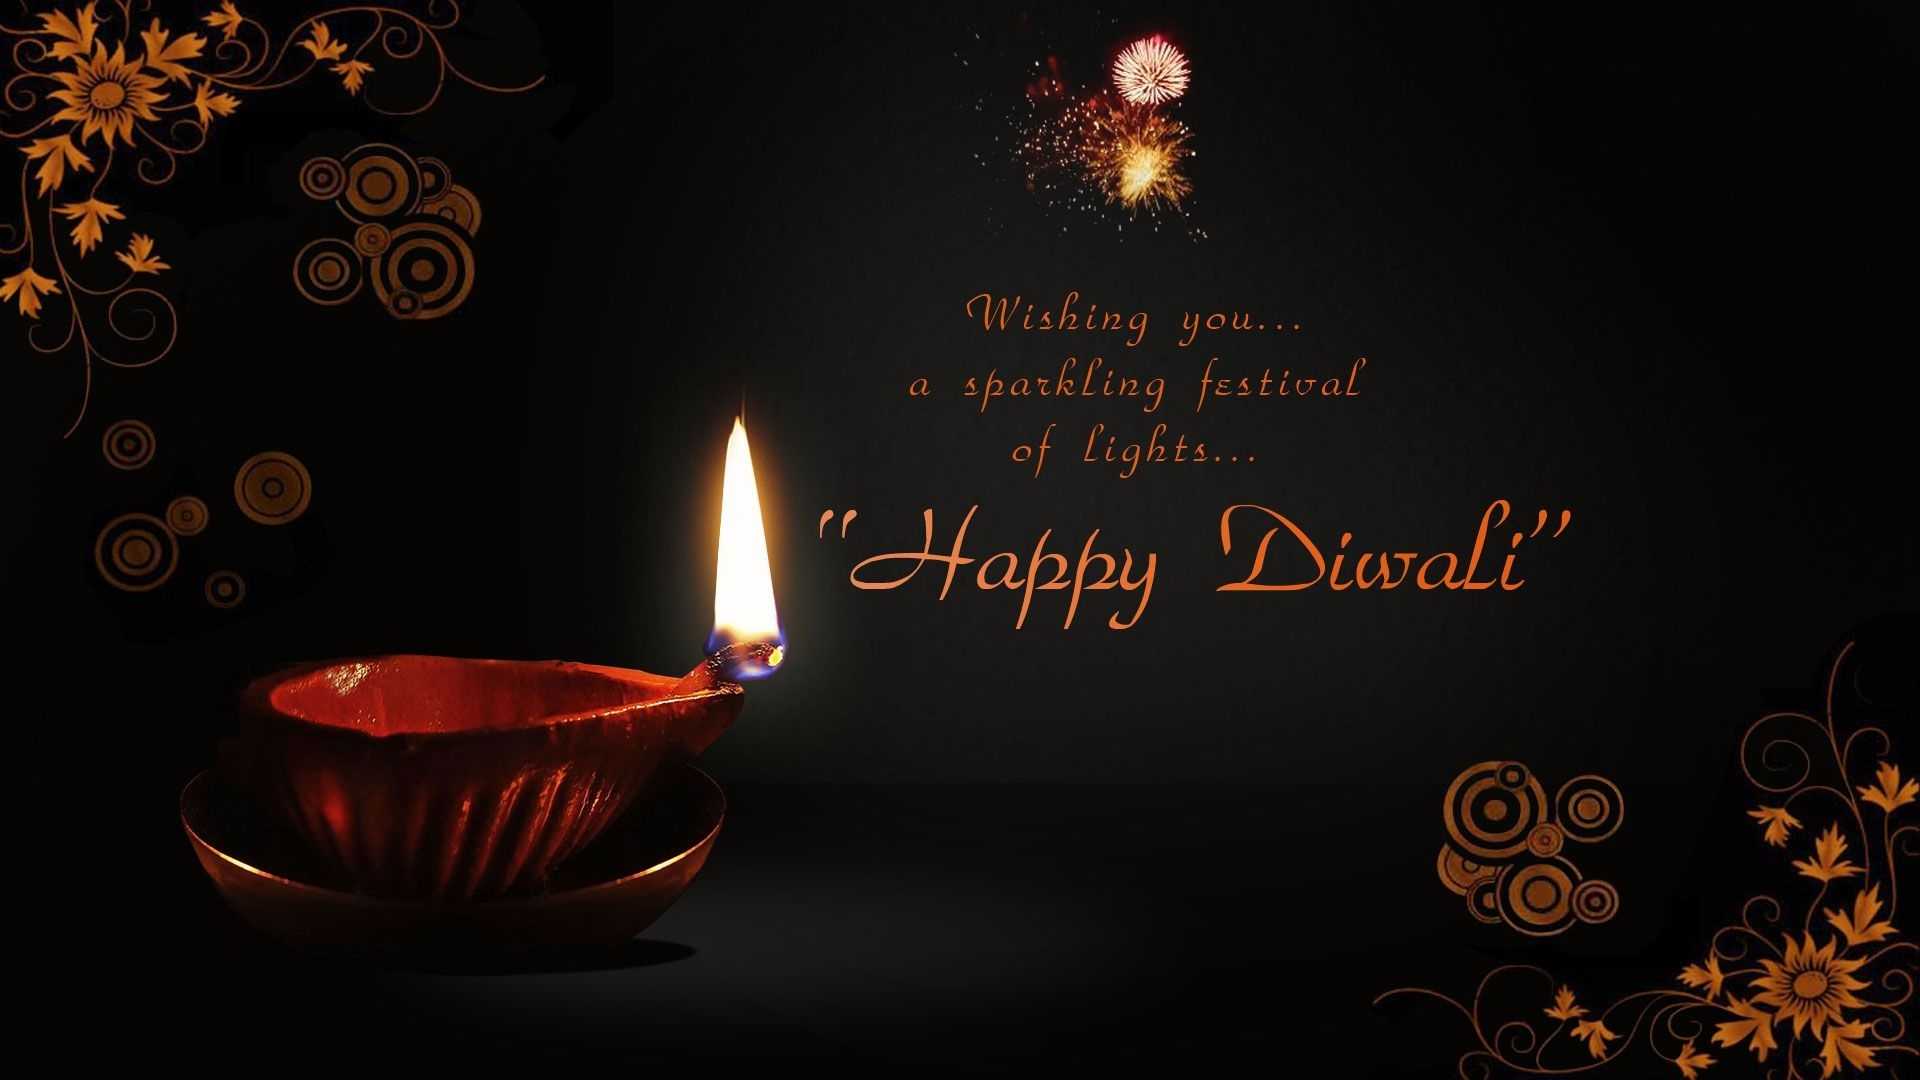 happy diwali photos hd wallpaper | hd diwali wallpapers for mobile